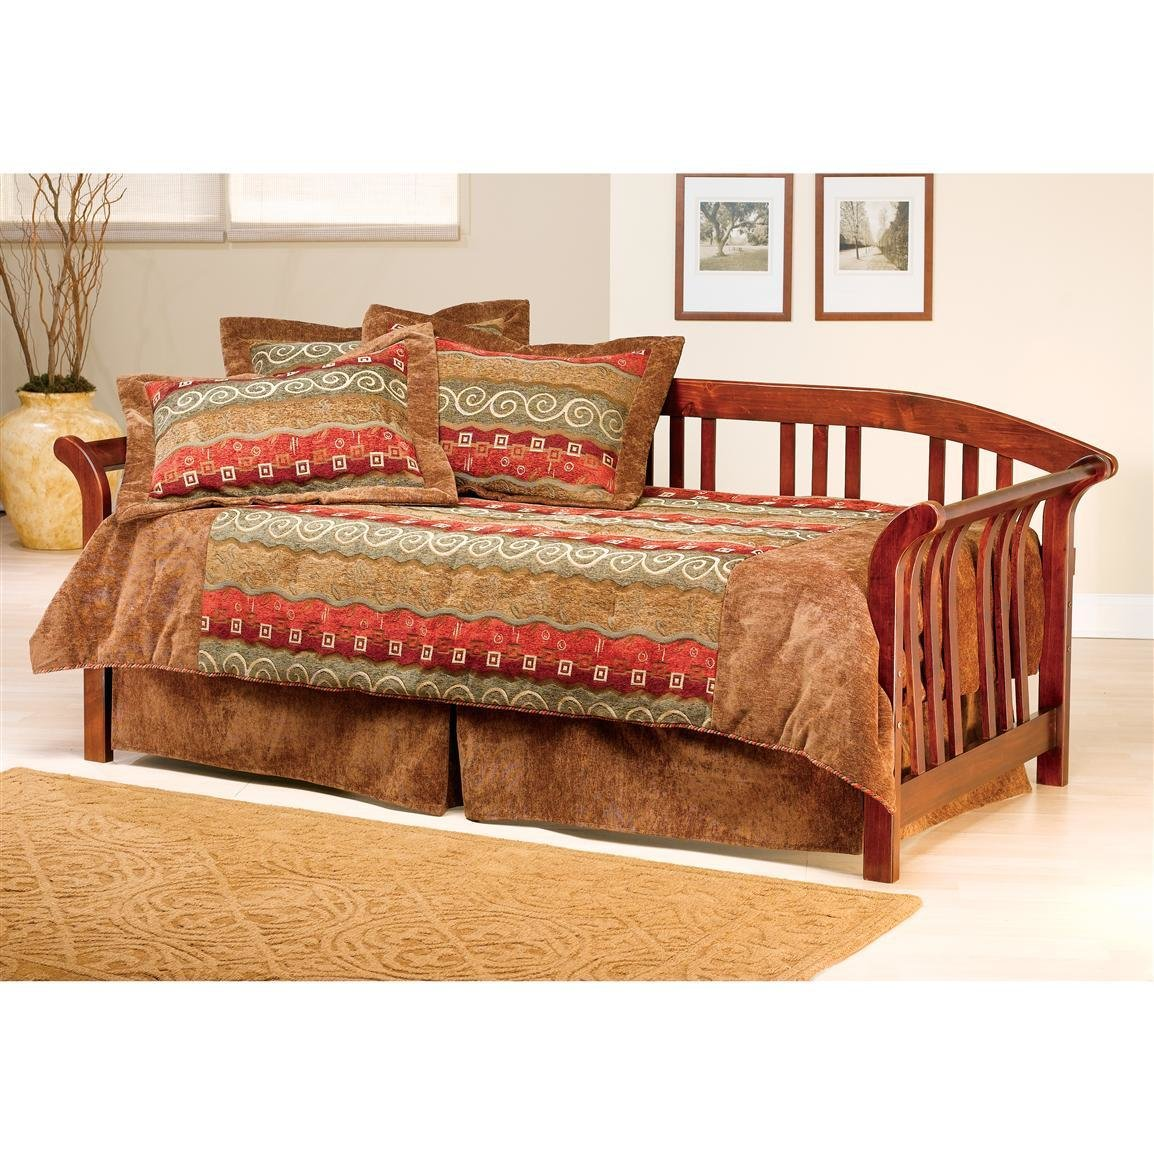 Best Hillsdale Dorchester Daybed 118192 Bedroom Sets At With Pictures